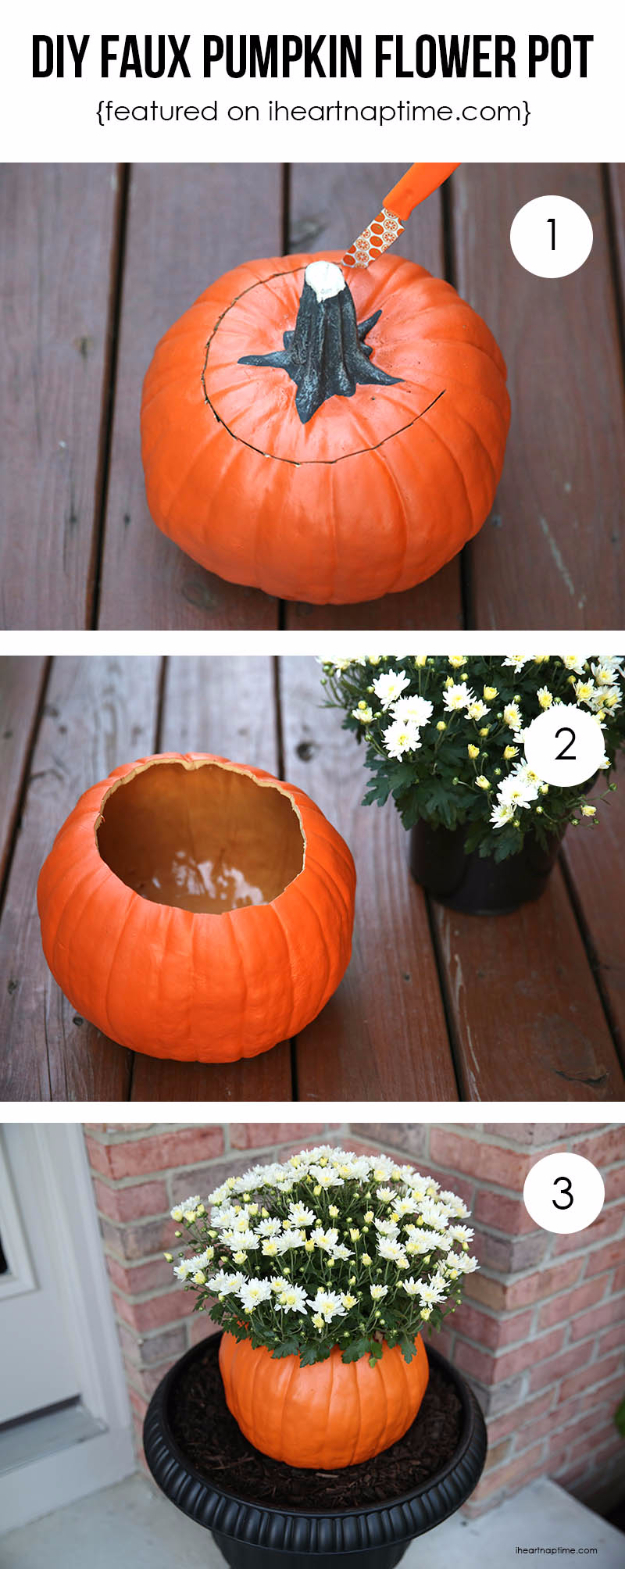 38 Best DIY Projects for Fall - DIY Pumpkin Flower Pot - Quick And Easy Projects For Fall, Fun DIY Projects To Try This Fall, Cute Fall Craft Ideas, Fall Decors, Easy DIY Crafts For Fall http://diyjoy.com/diy-projects-for-fall